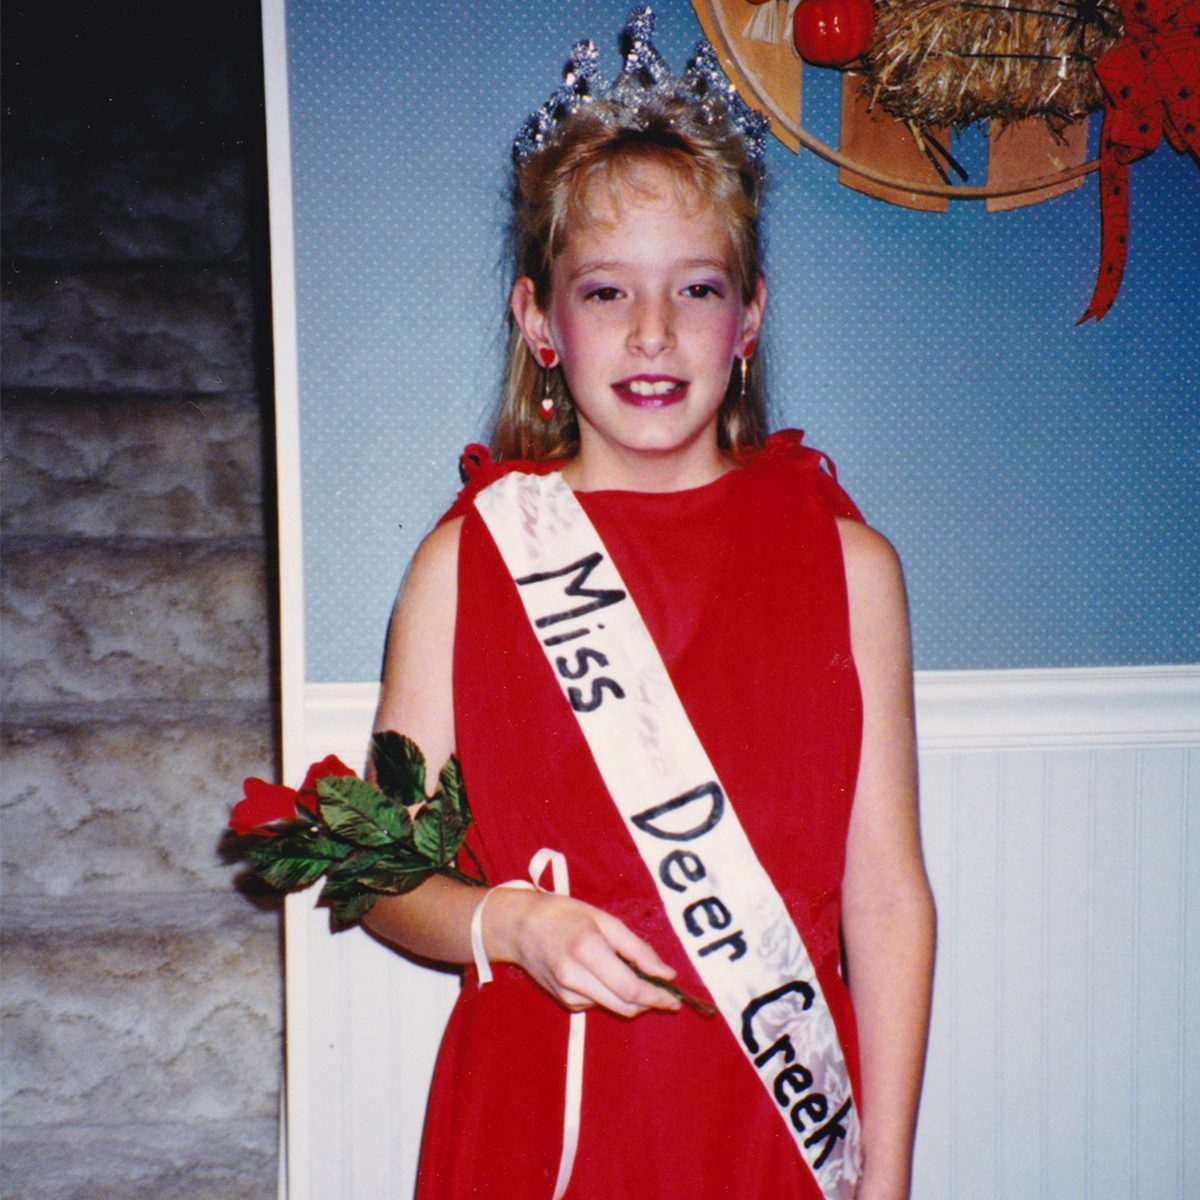 girl dressed as a beauty queen for Halloween costume